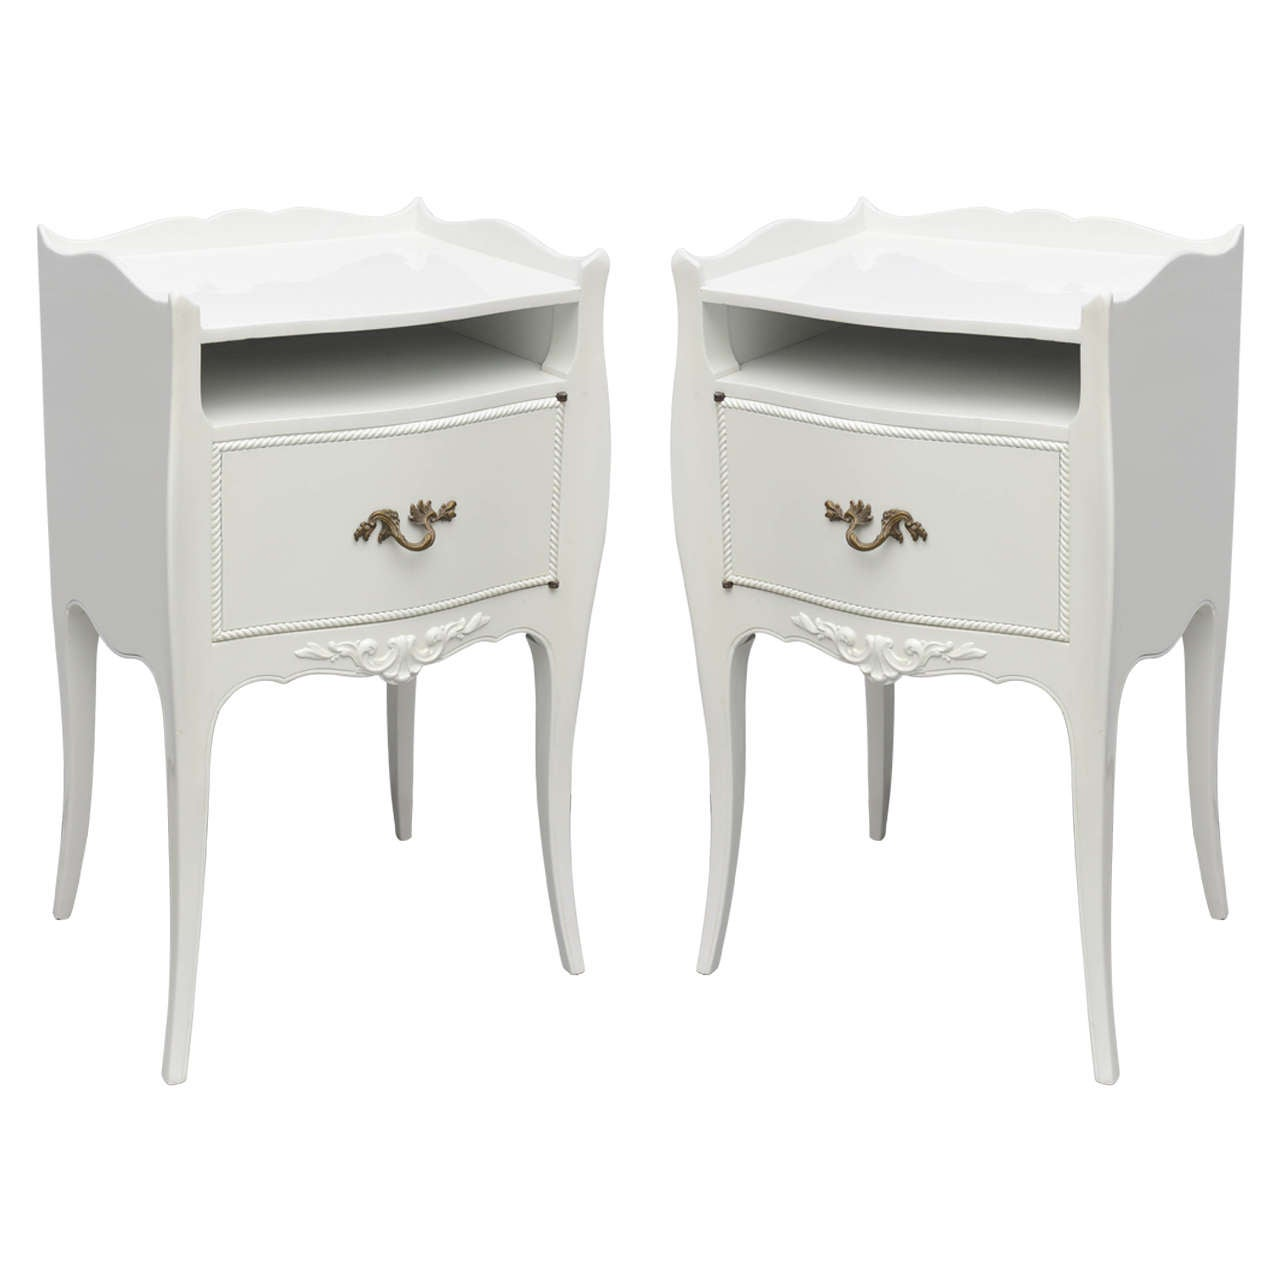 john widdicomb white lacquer nightstands usa s . john widdicomb white lacquer nightstands usa s for sale at